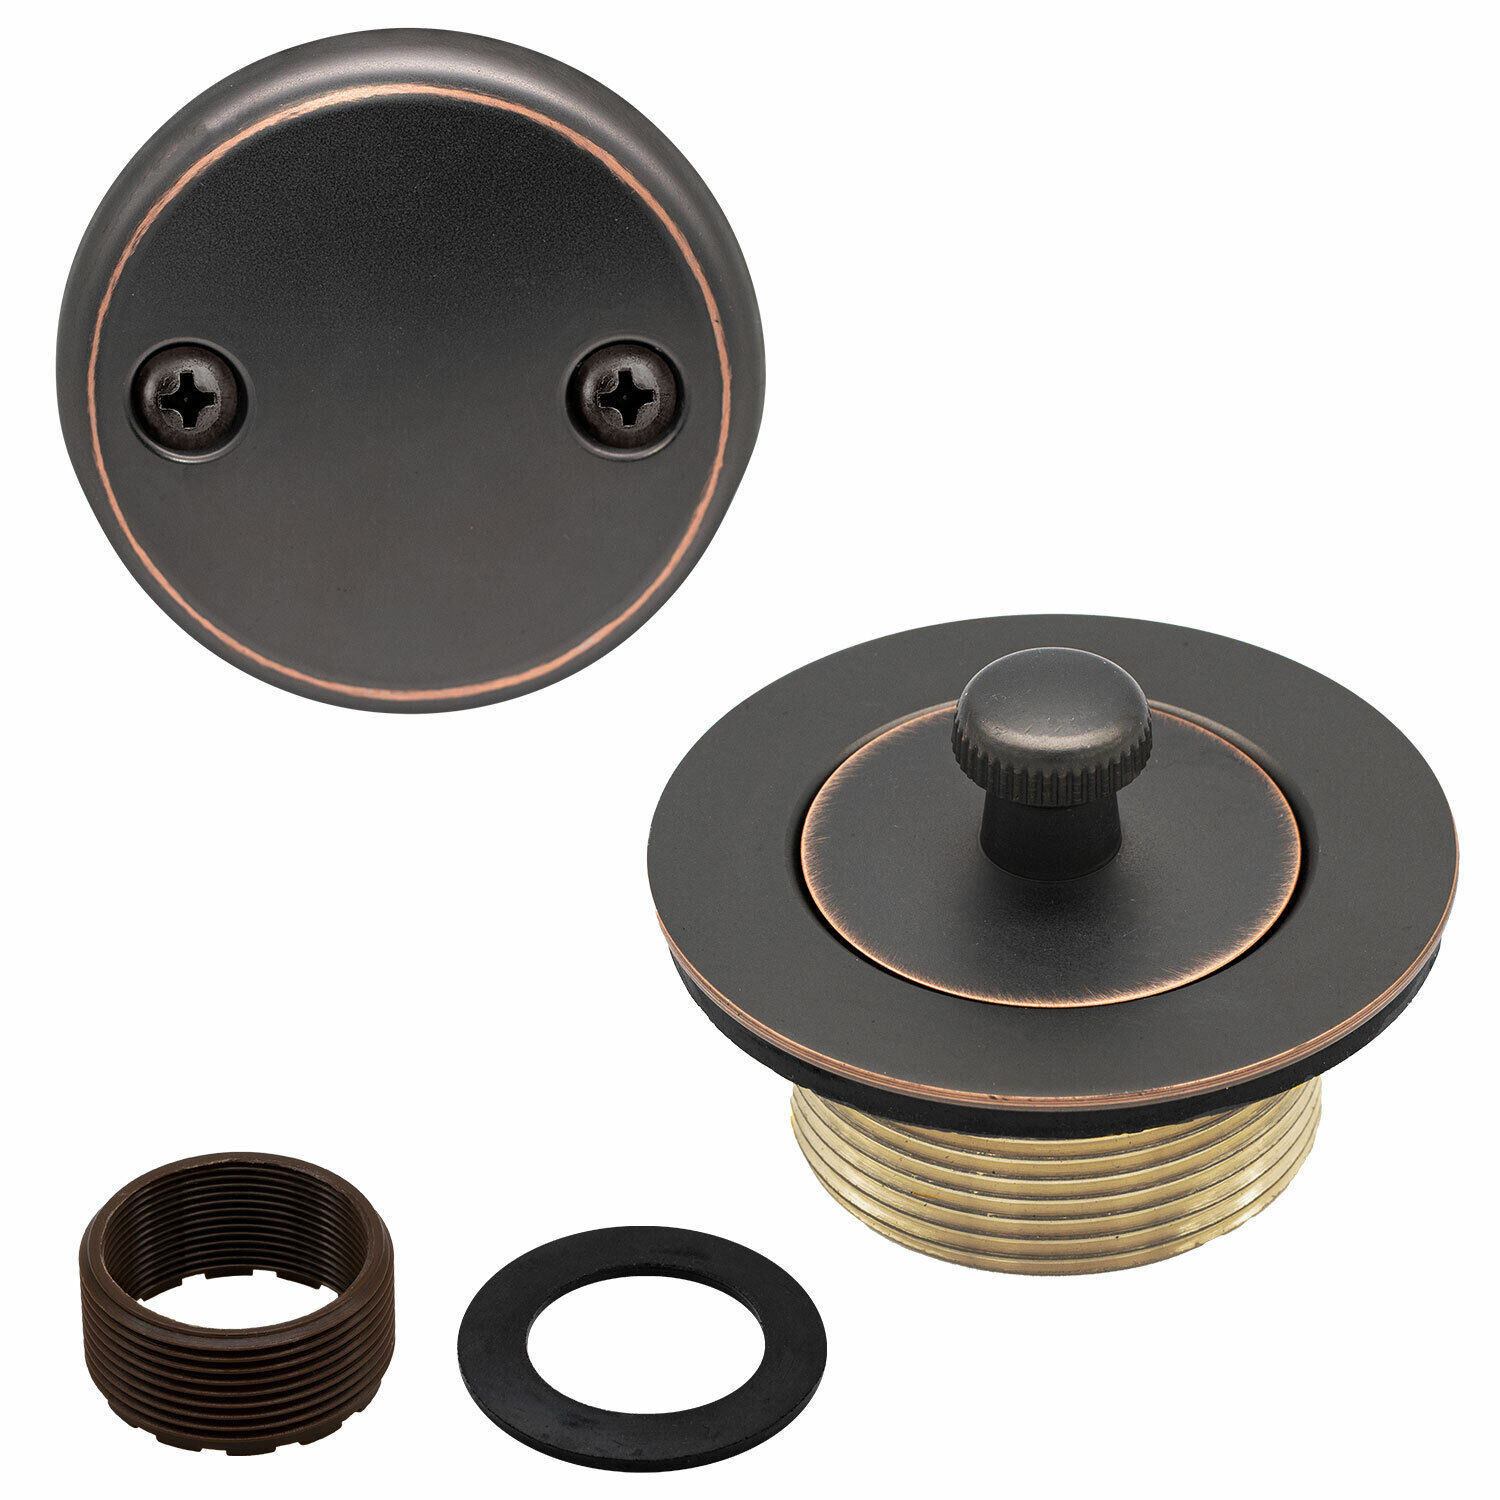 Lift and Turn Bathtub Replacement Tub Drain Overflow Cover Kit Oil Rubbed Bronze Bath